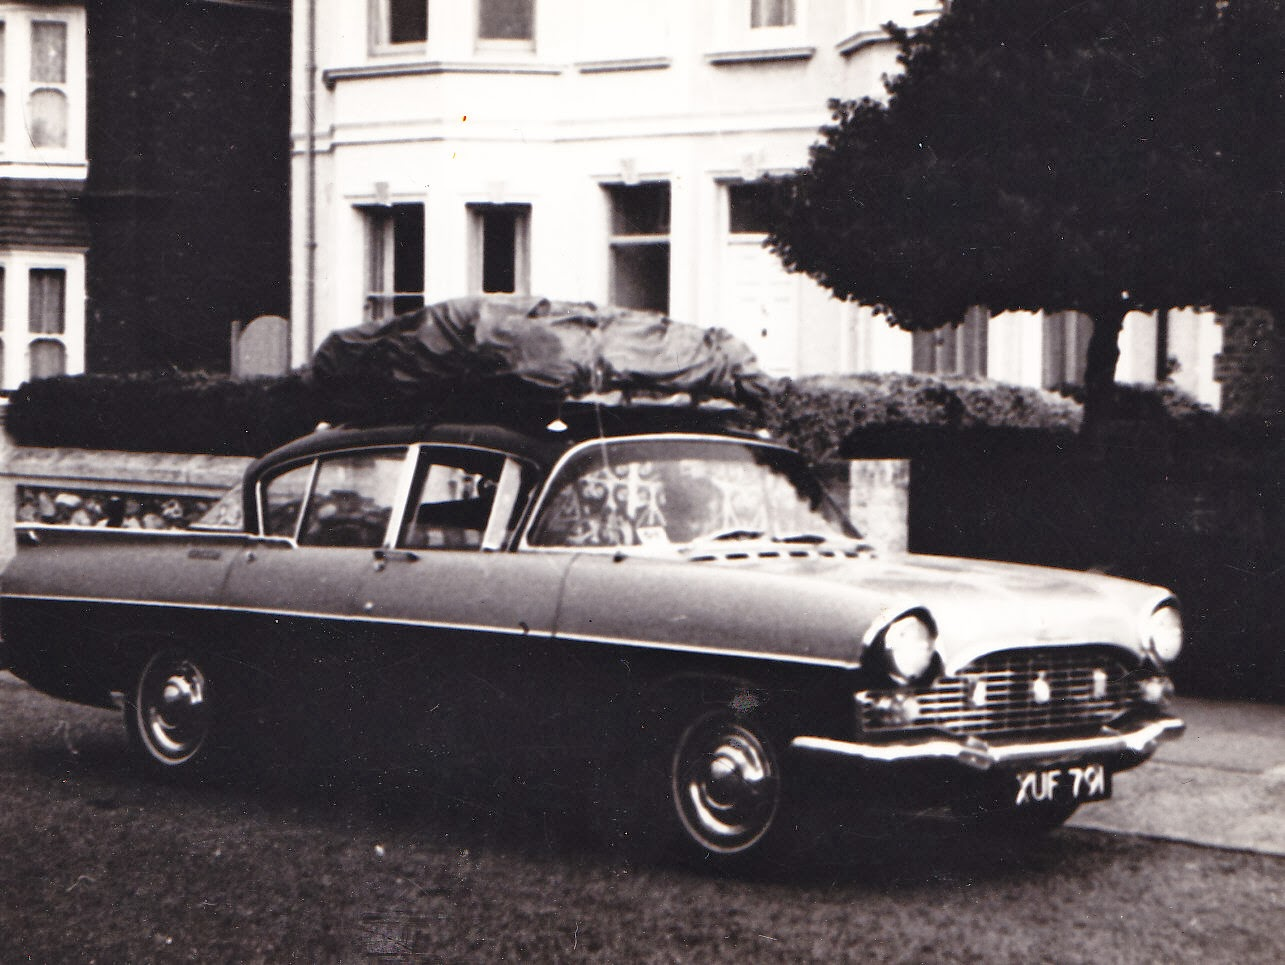 Photo: August 1969 family car ready and loaded.